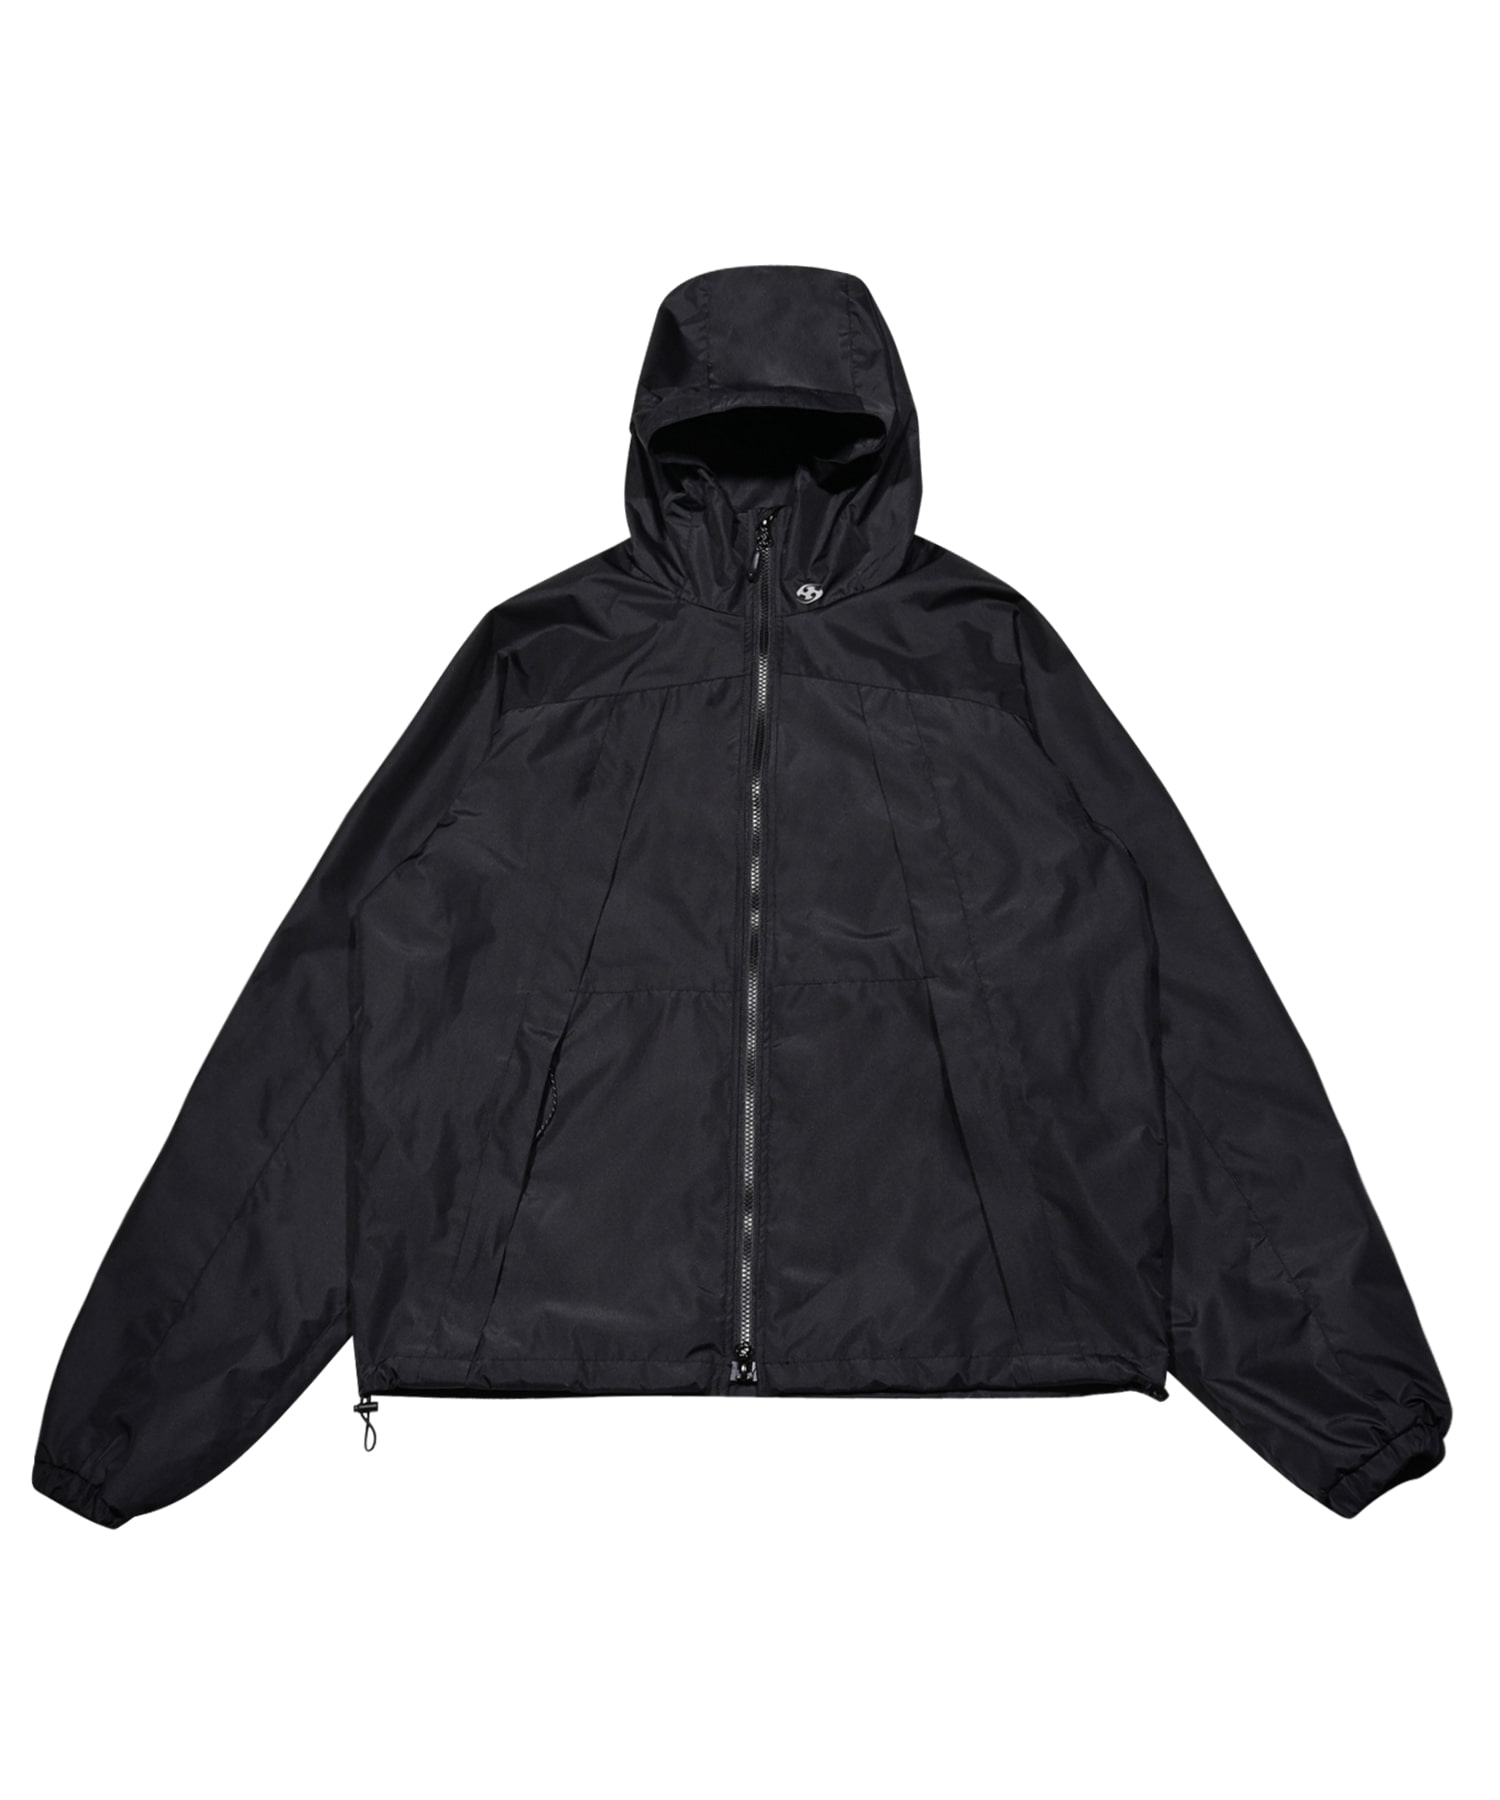 WIND BLOCK JACKET BLACK